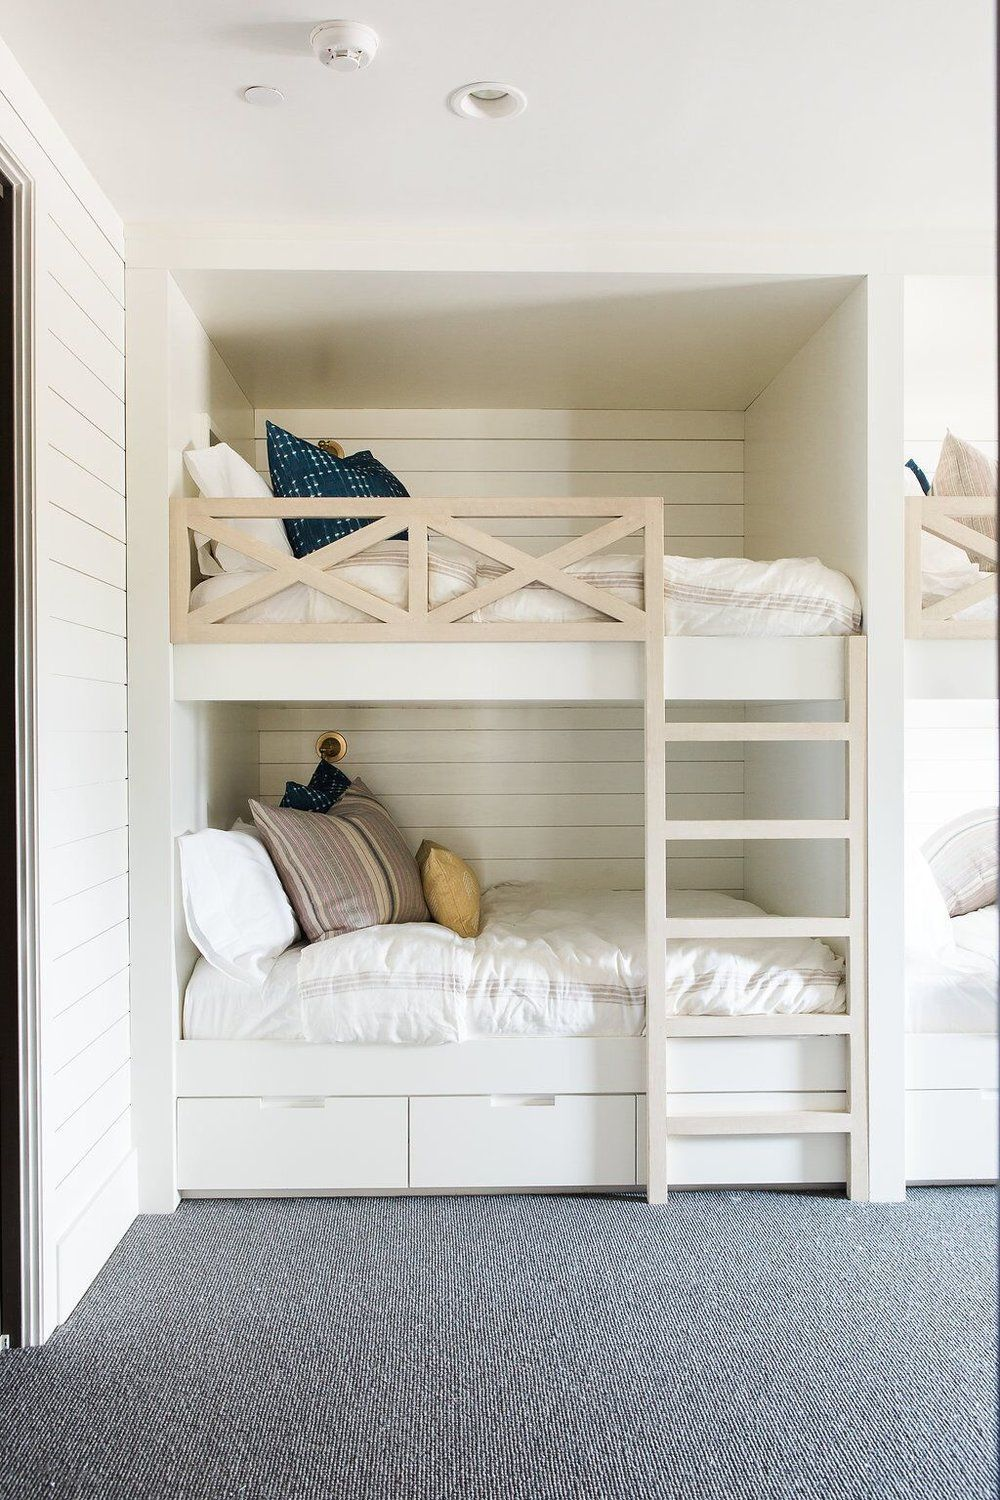 Bunk Bed Room Ideas Boy And Girl Bunk Bed Room Ideas Pinterest Bunk Bed Bedroom Ideas Bunk Bed Small Room Idea Cool Bunk Beds Bunk Bed Rooms Bunk Beds Built In